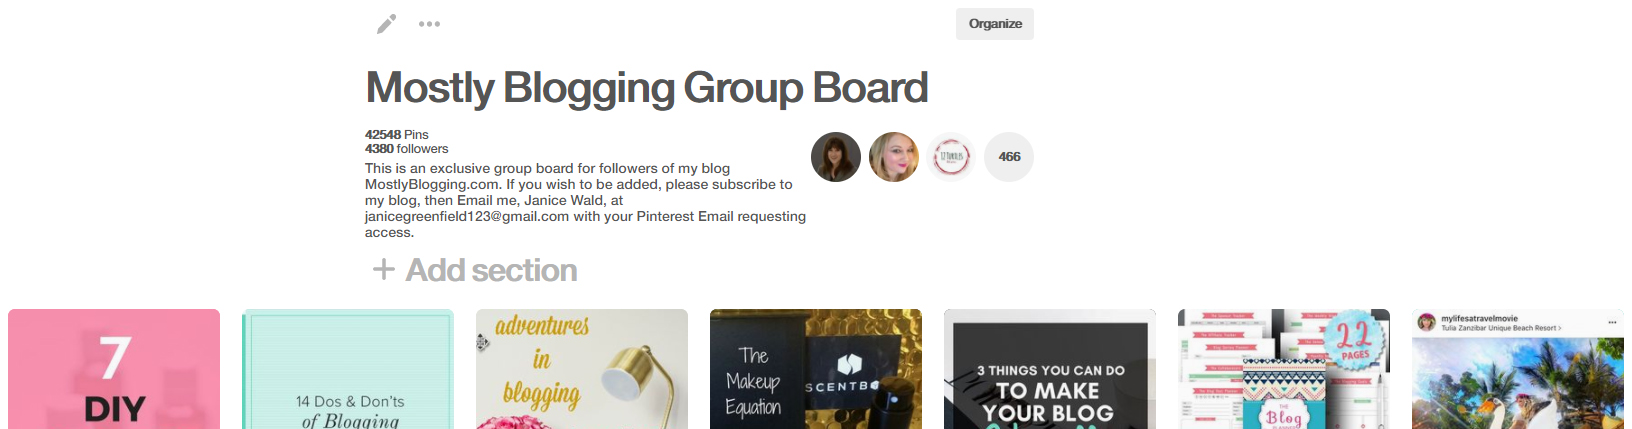 how-to-use-group-boards-3